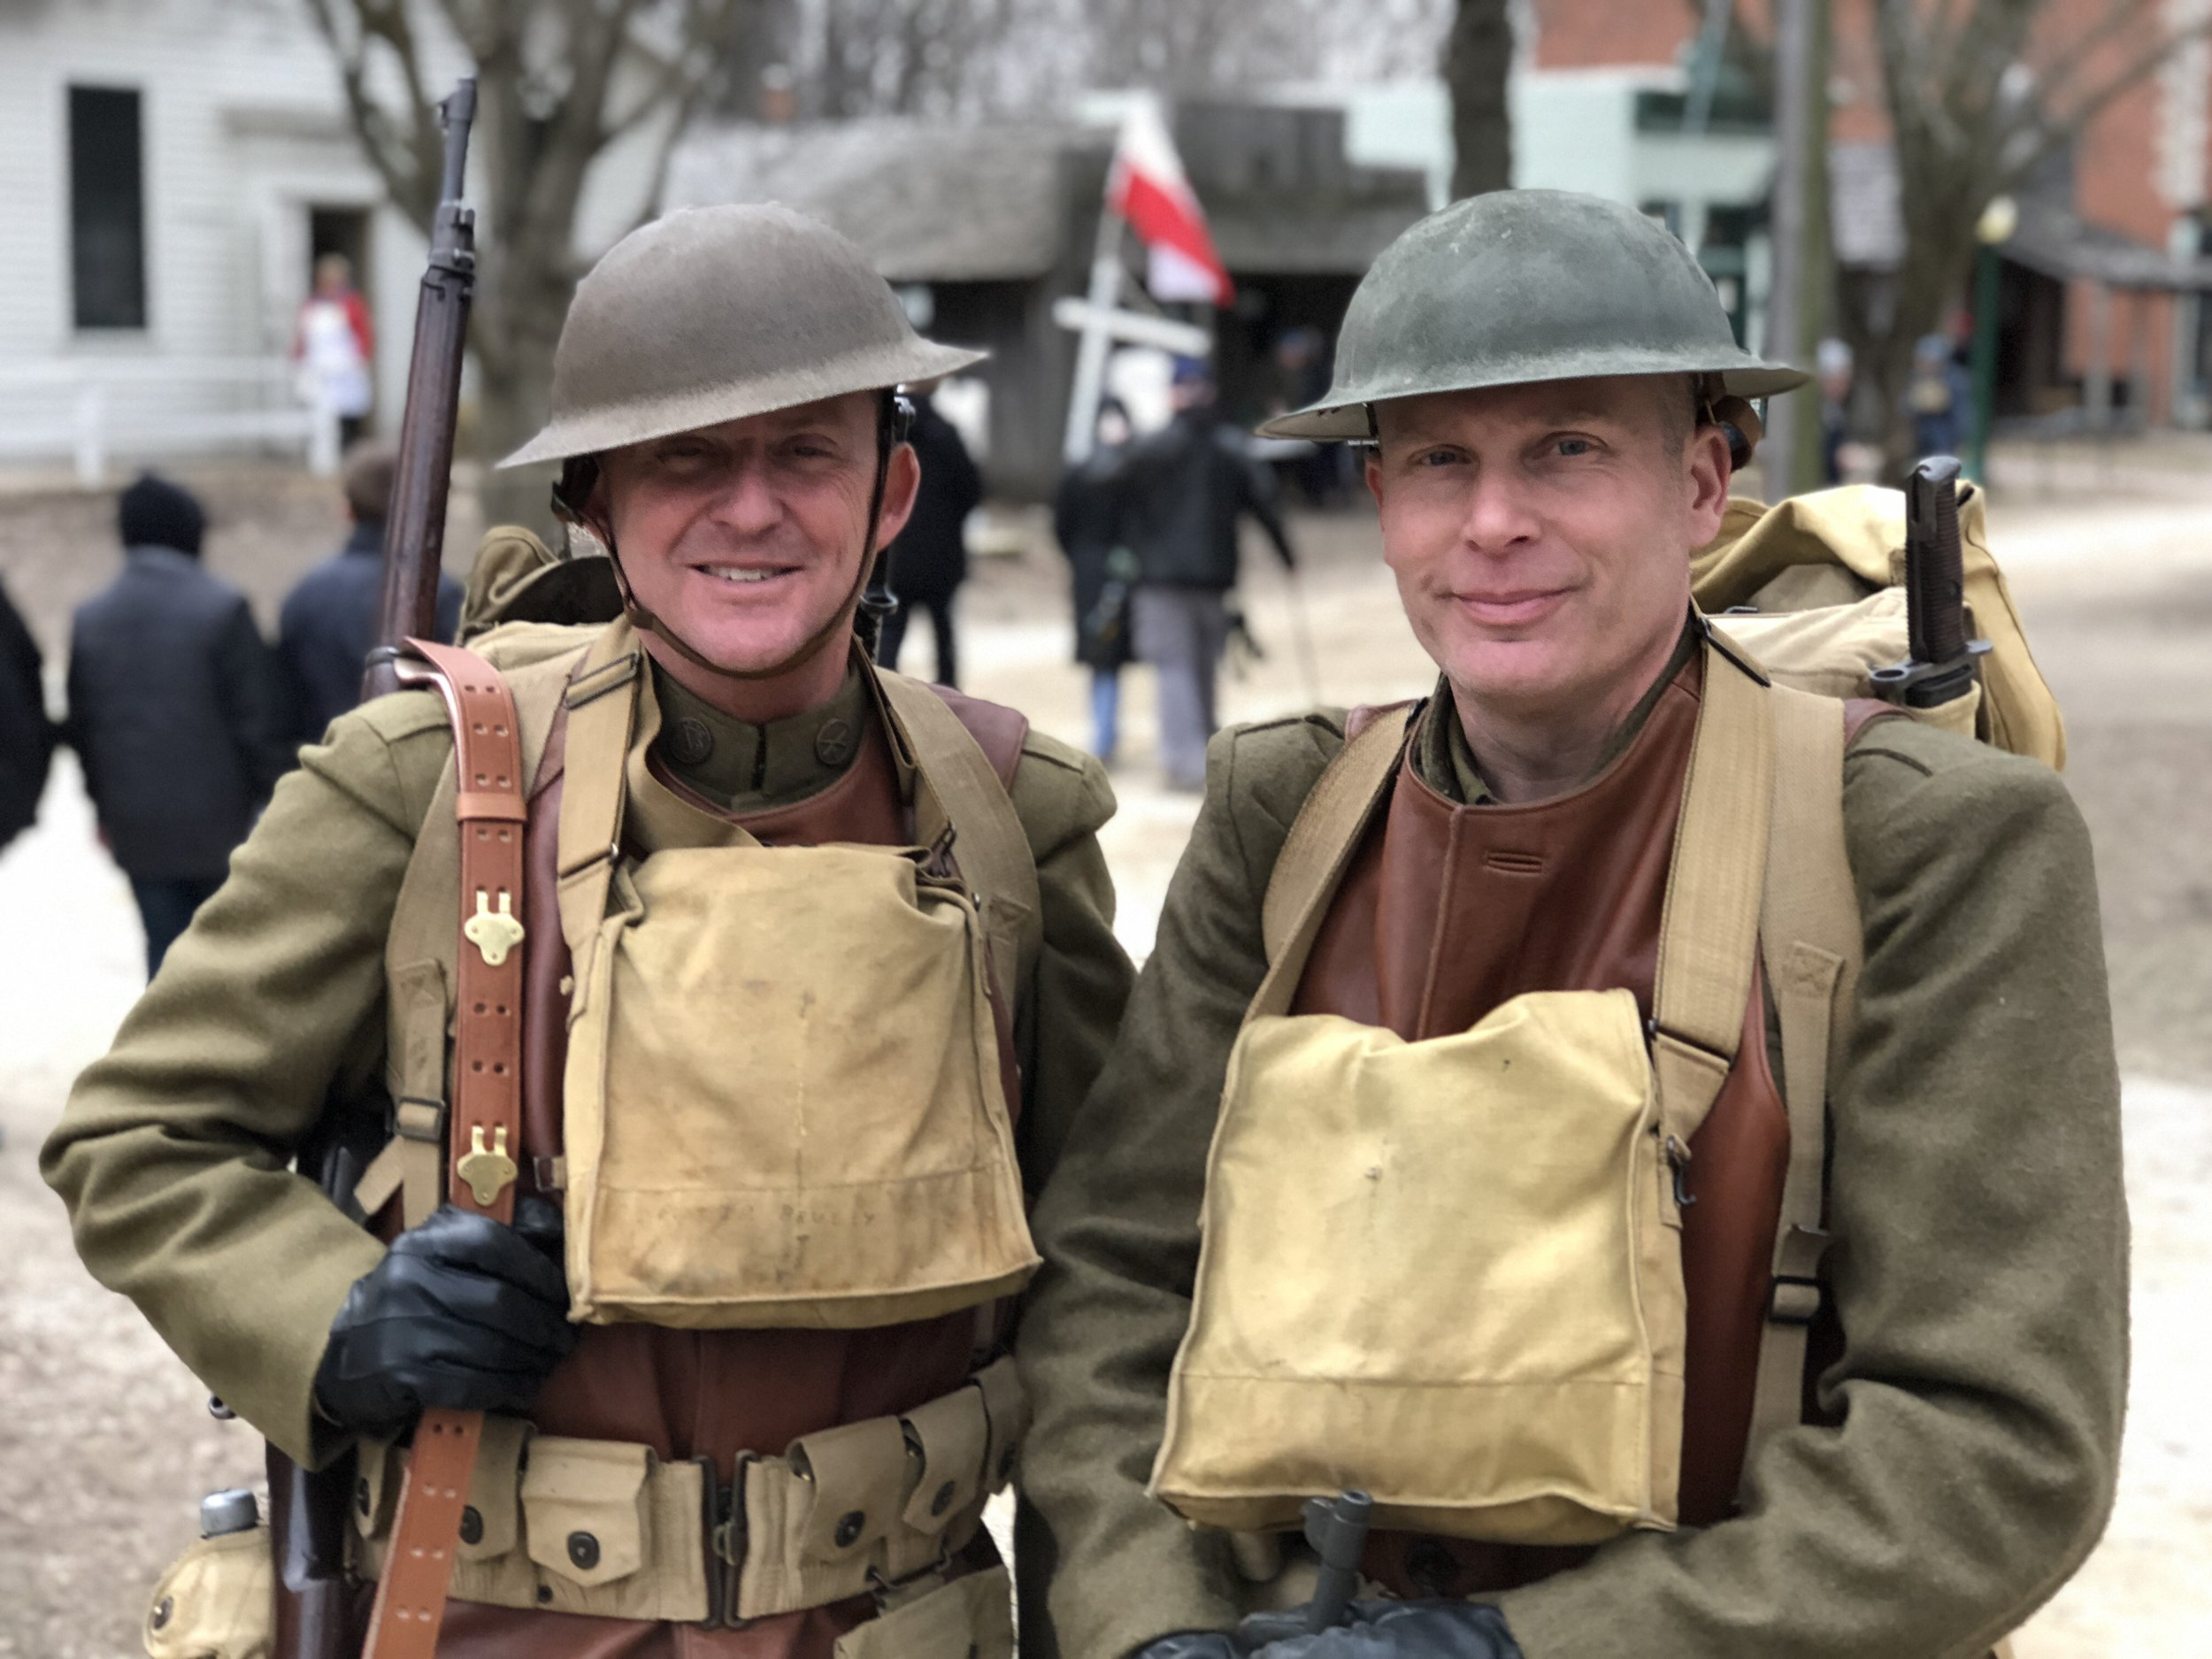 WWI Midway Village Museum, Rockford, Illinois